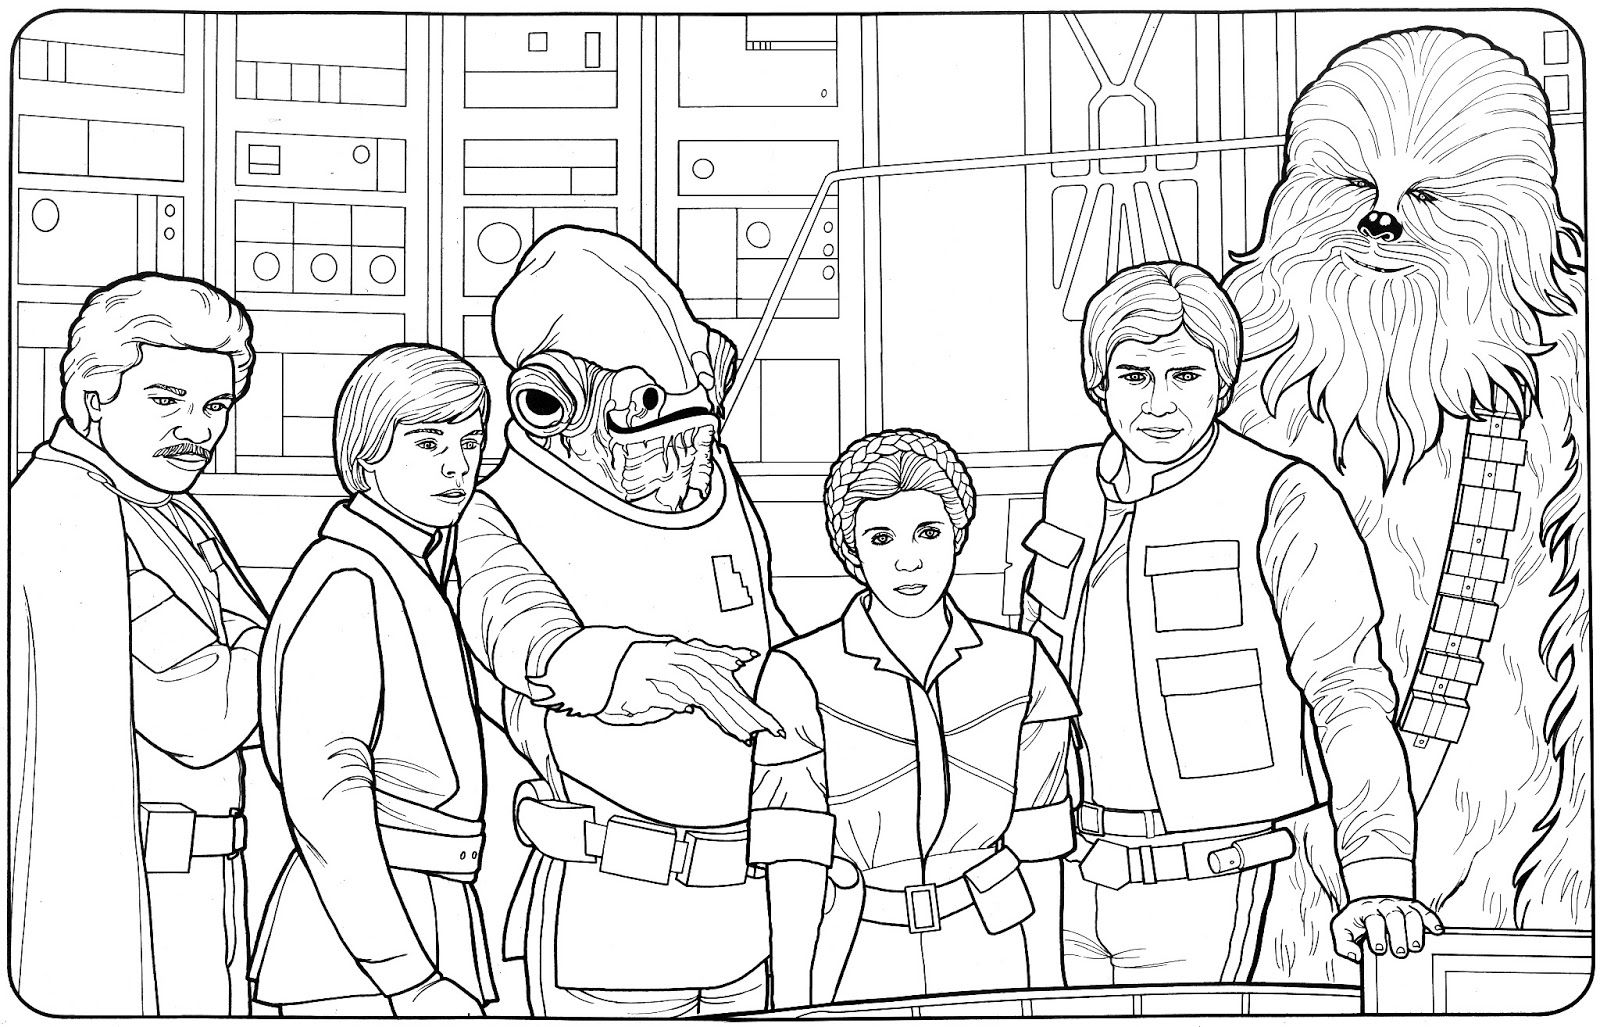 jedi coloring pages Star Wars Jedi Coloring Pages | Coloring people | Coloring pages  jedi coloring pages